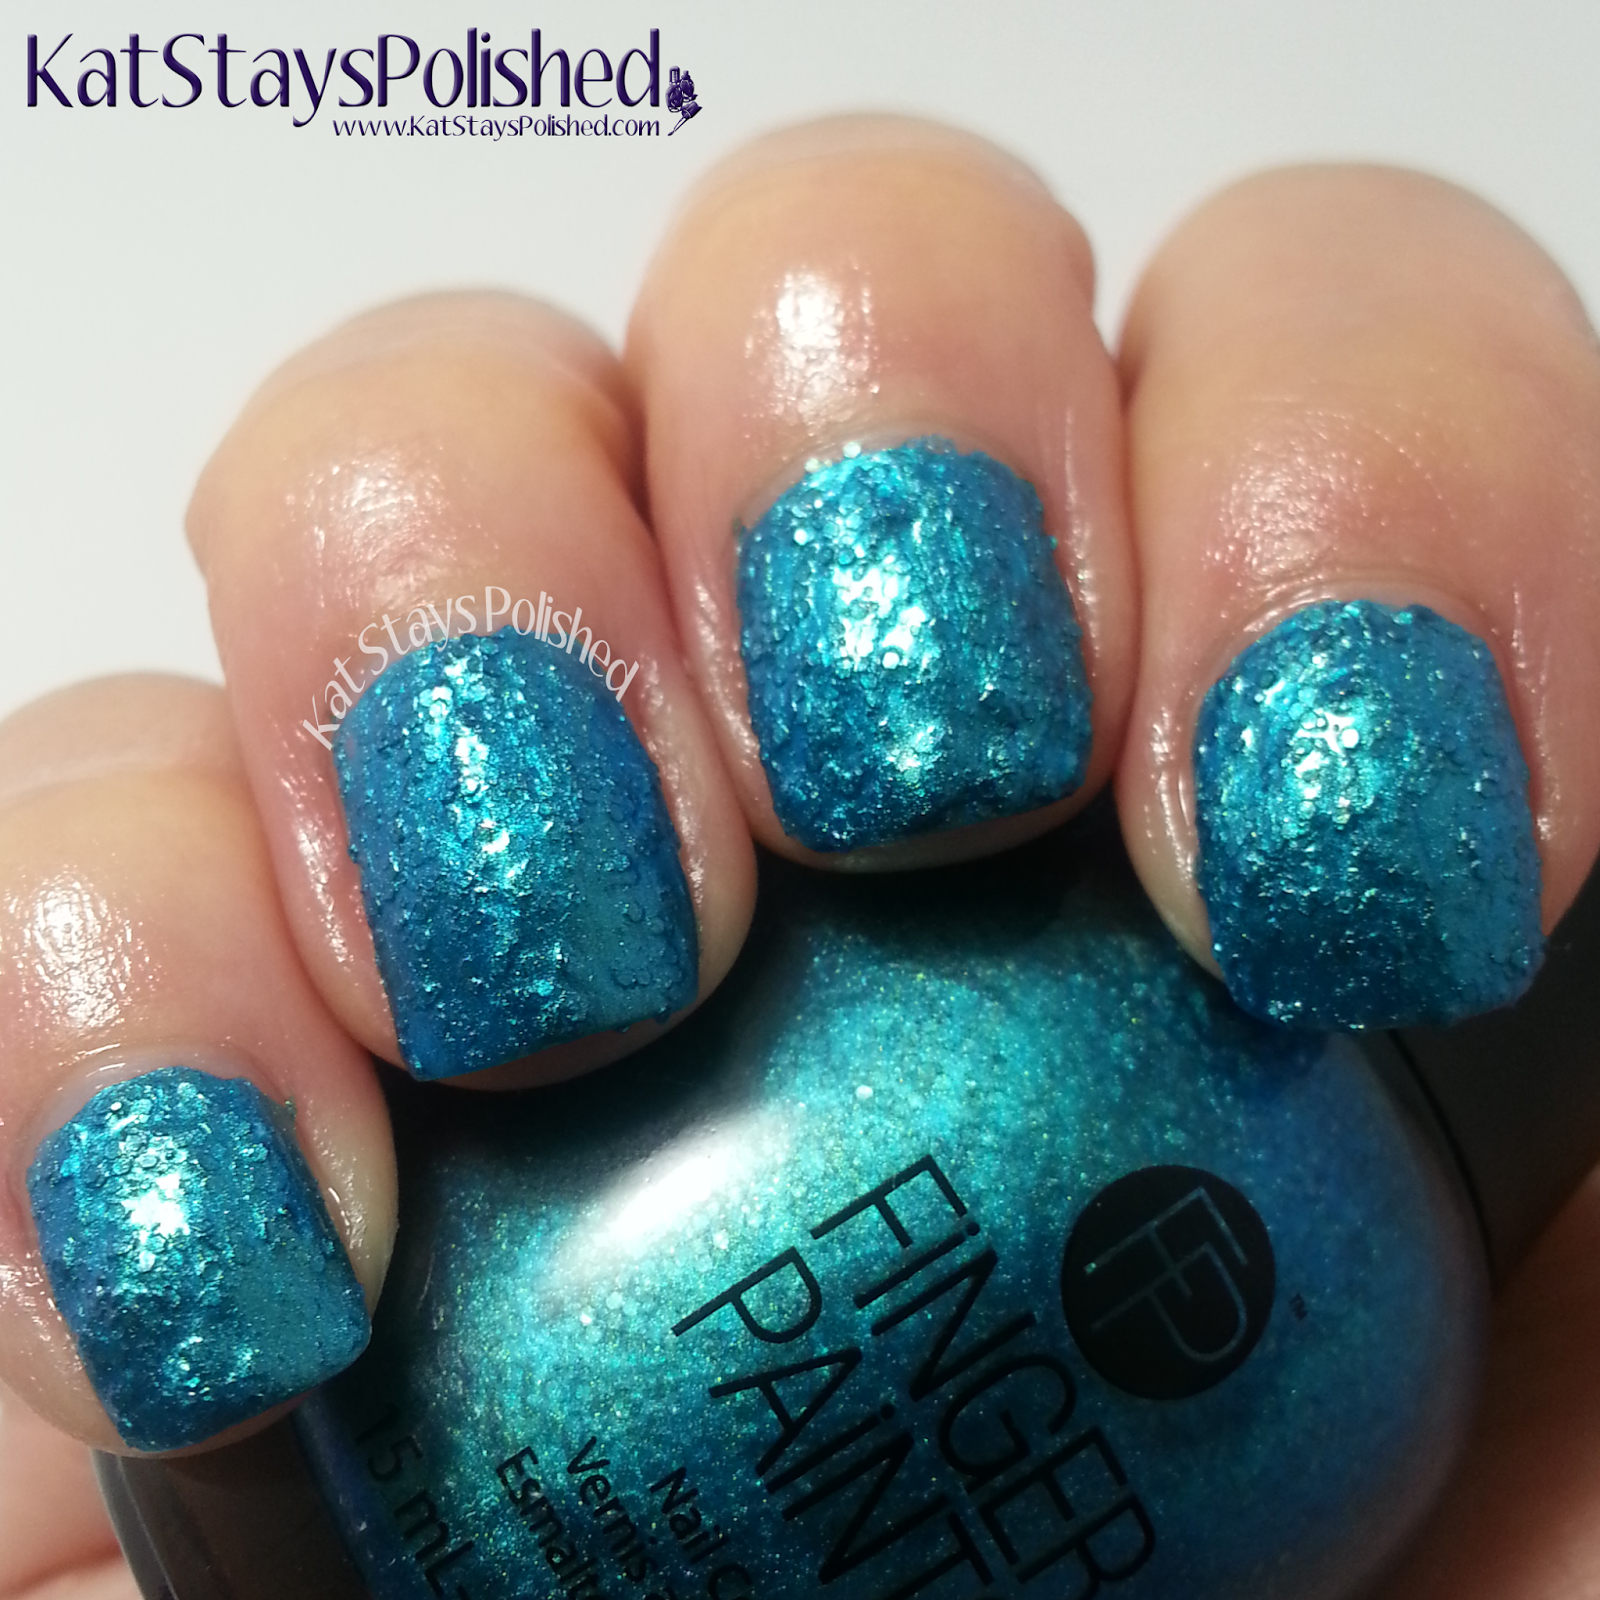 FingerPaints - Enchanted Mermaid 2014 - Tails of Love | Kat Stays Polished